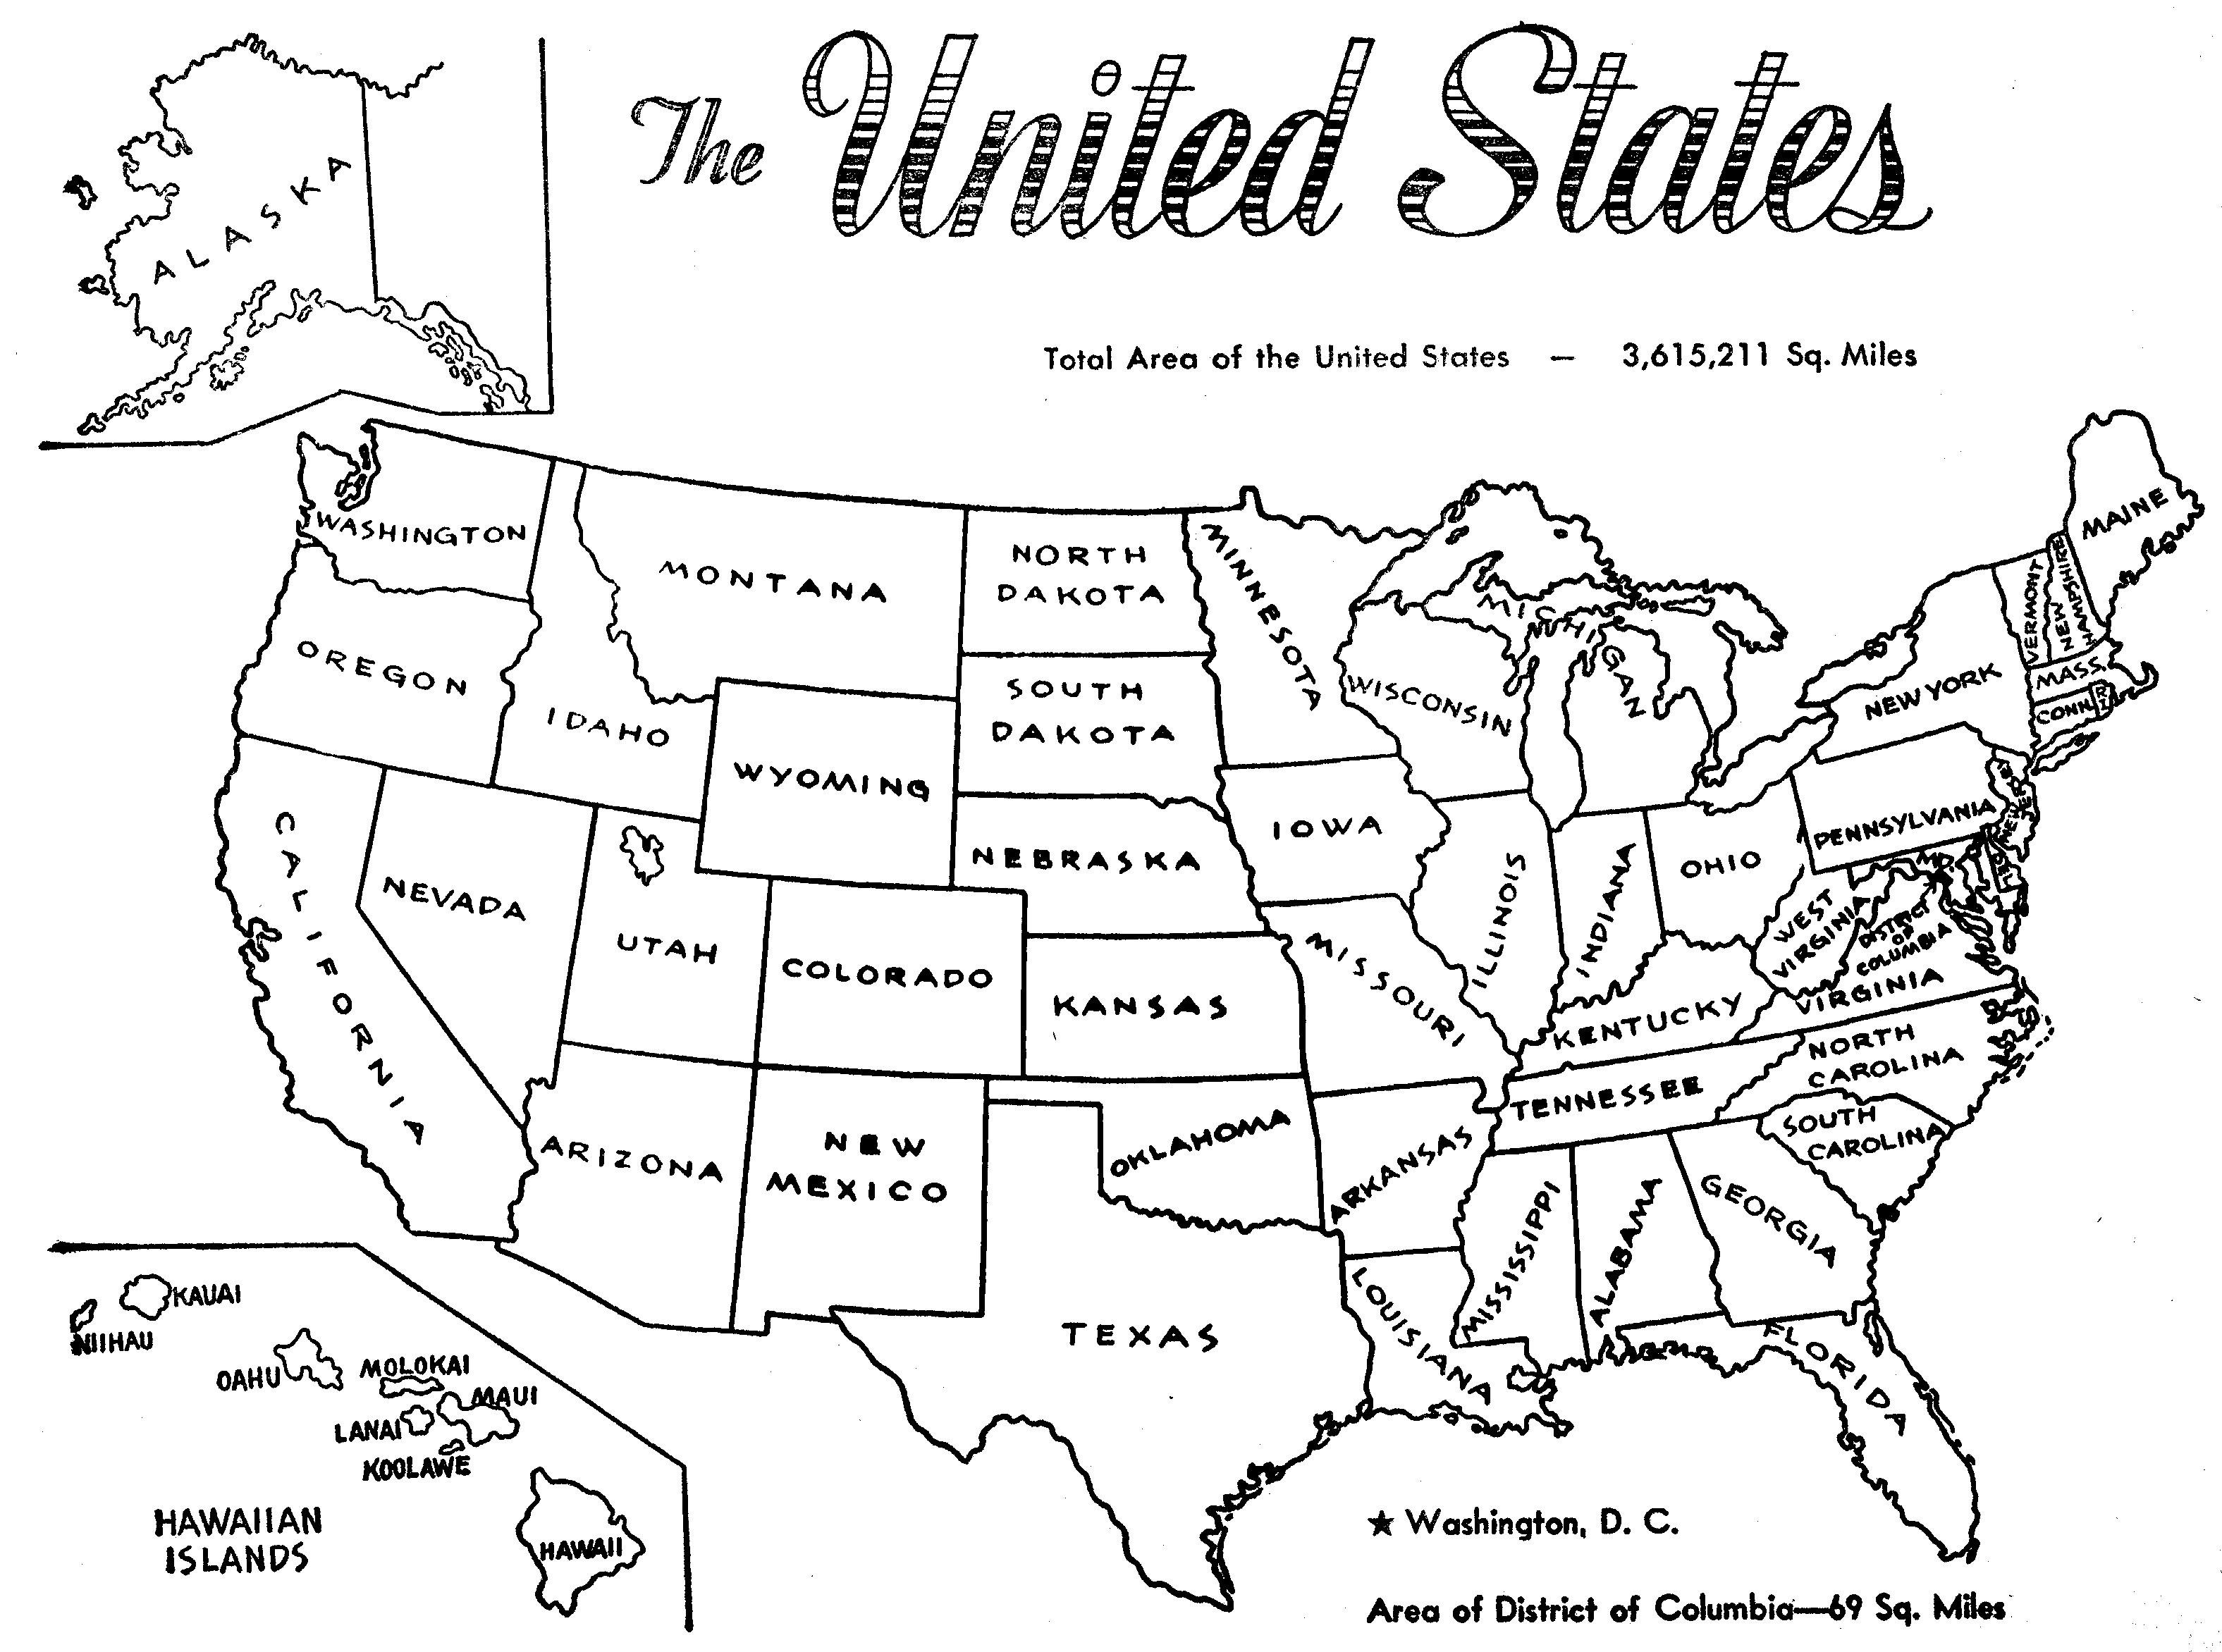 coloring page map of the united states us map coloring pages best coloring pages for kids united map coloring states of the page